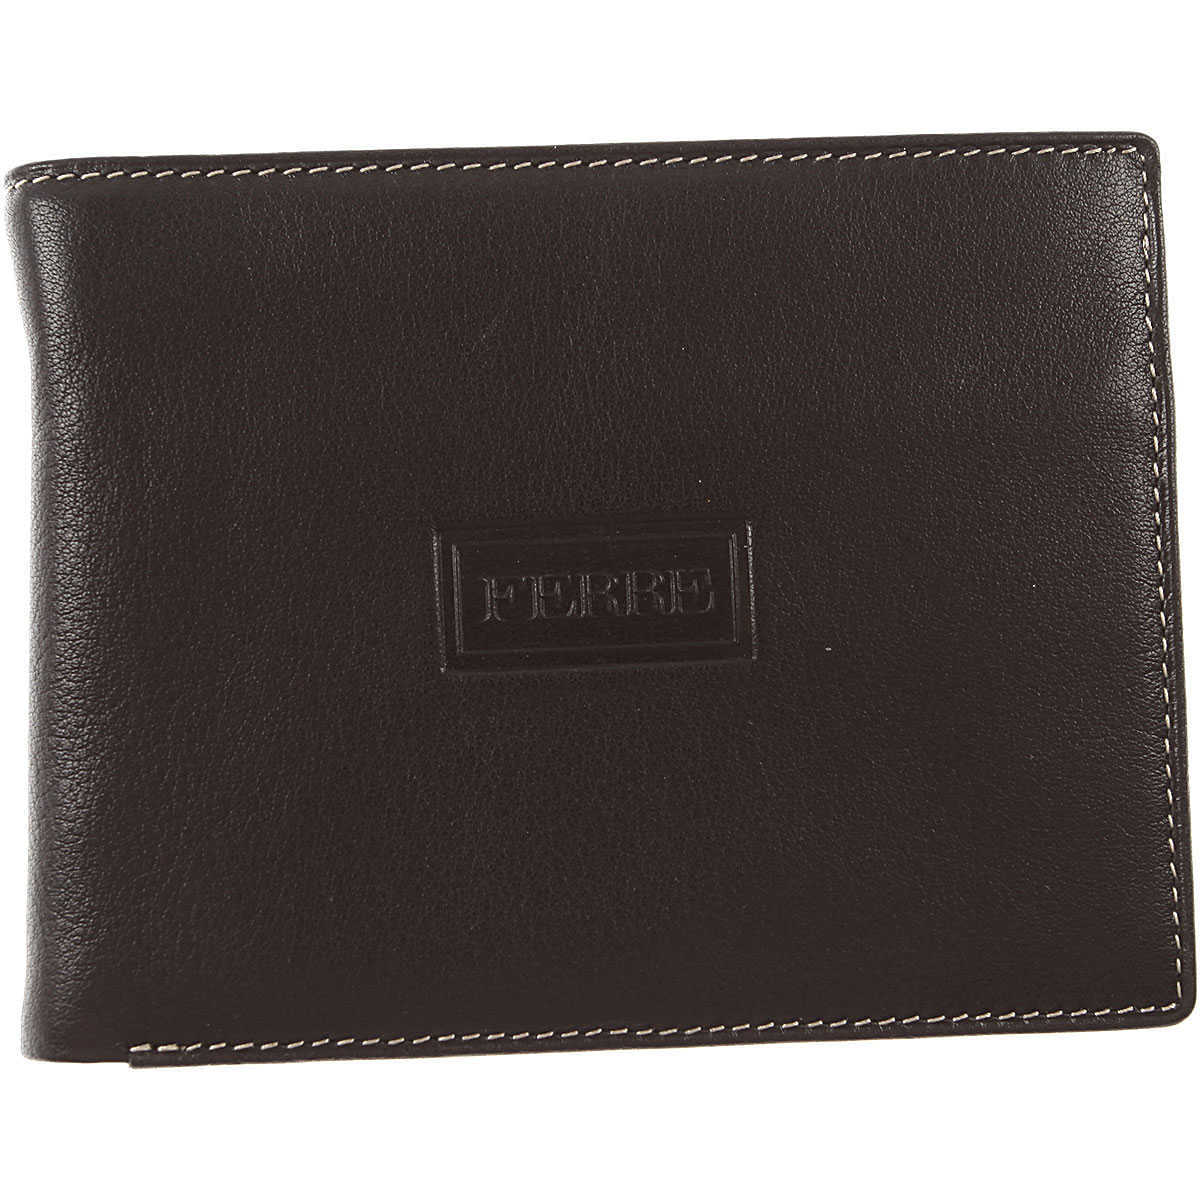 Gianfranco Ferre Wallet for Men On Sale in Outlet Black UK - GOOFASH